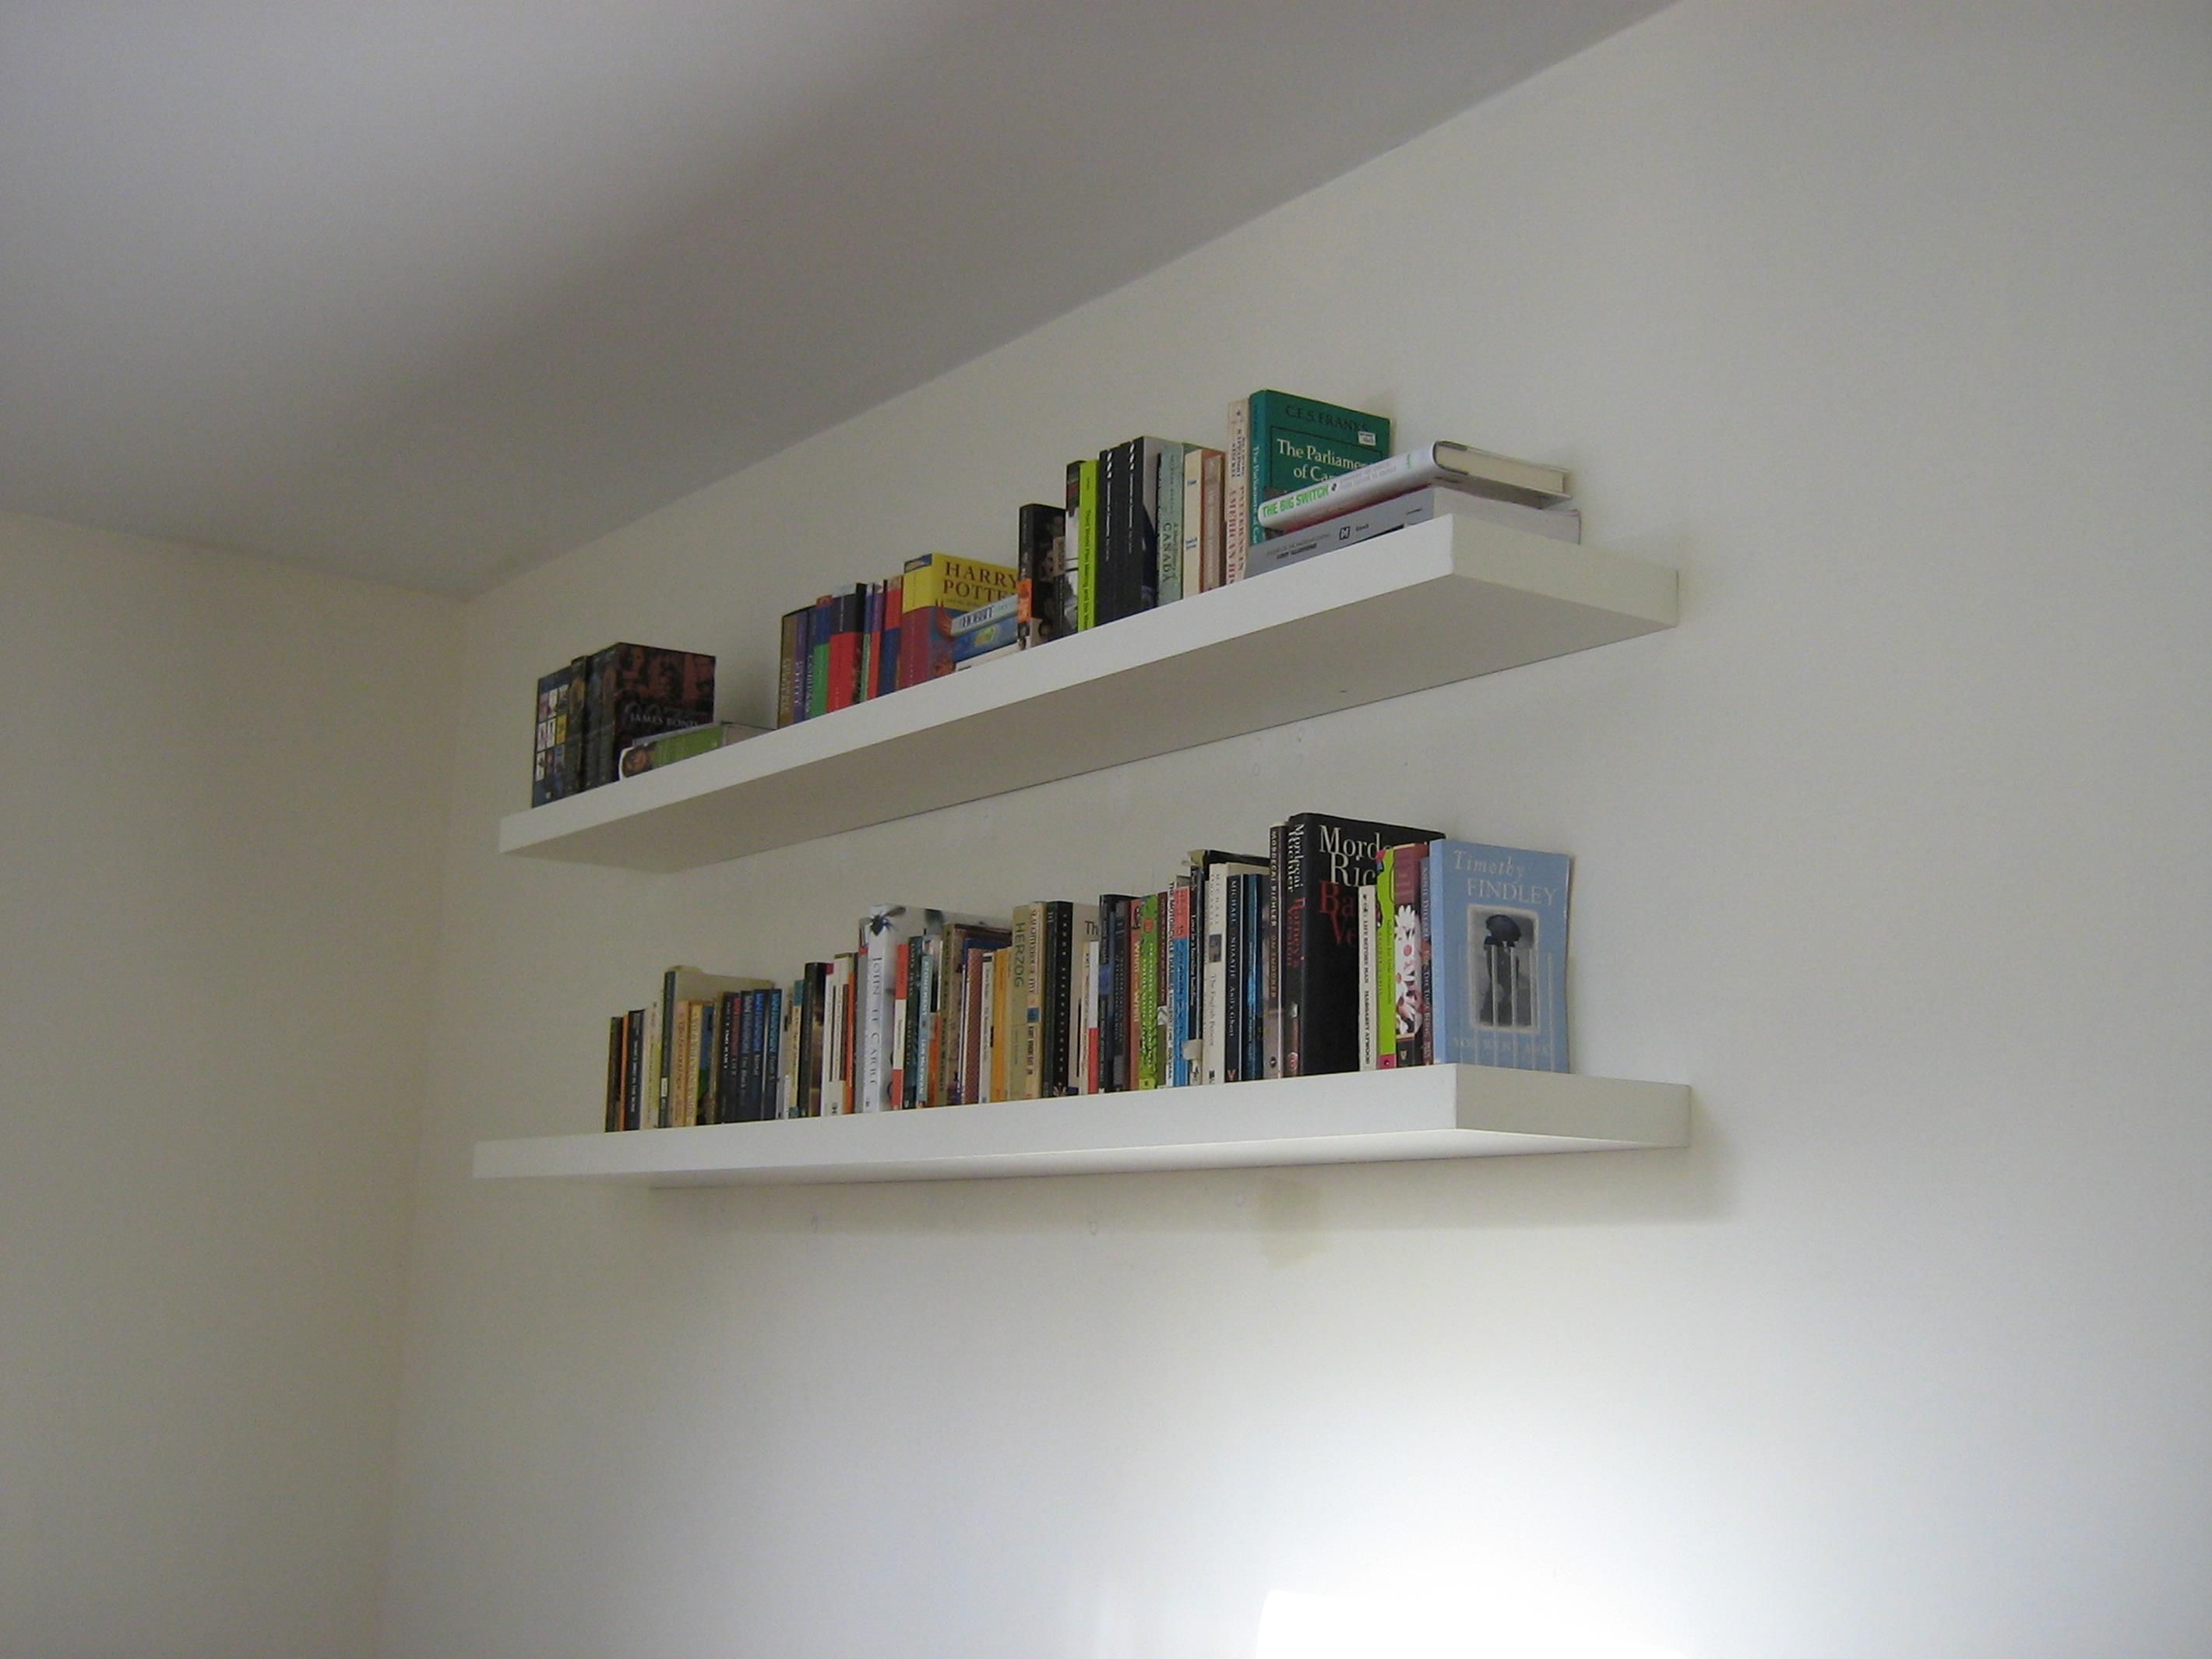 Best 30 Unique Cheap Ikea Floating Bookshelves Ideas Decorewarding Wall Bookshelves Bookshelves In Bedroom Wooden Wall Shelves